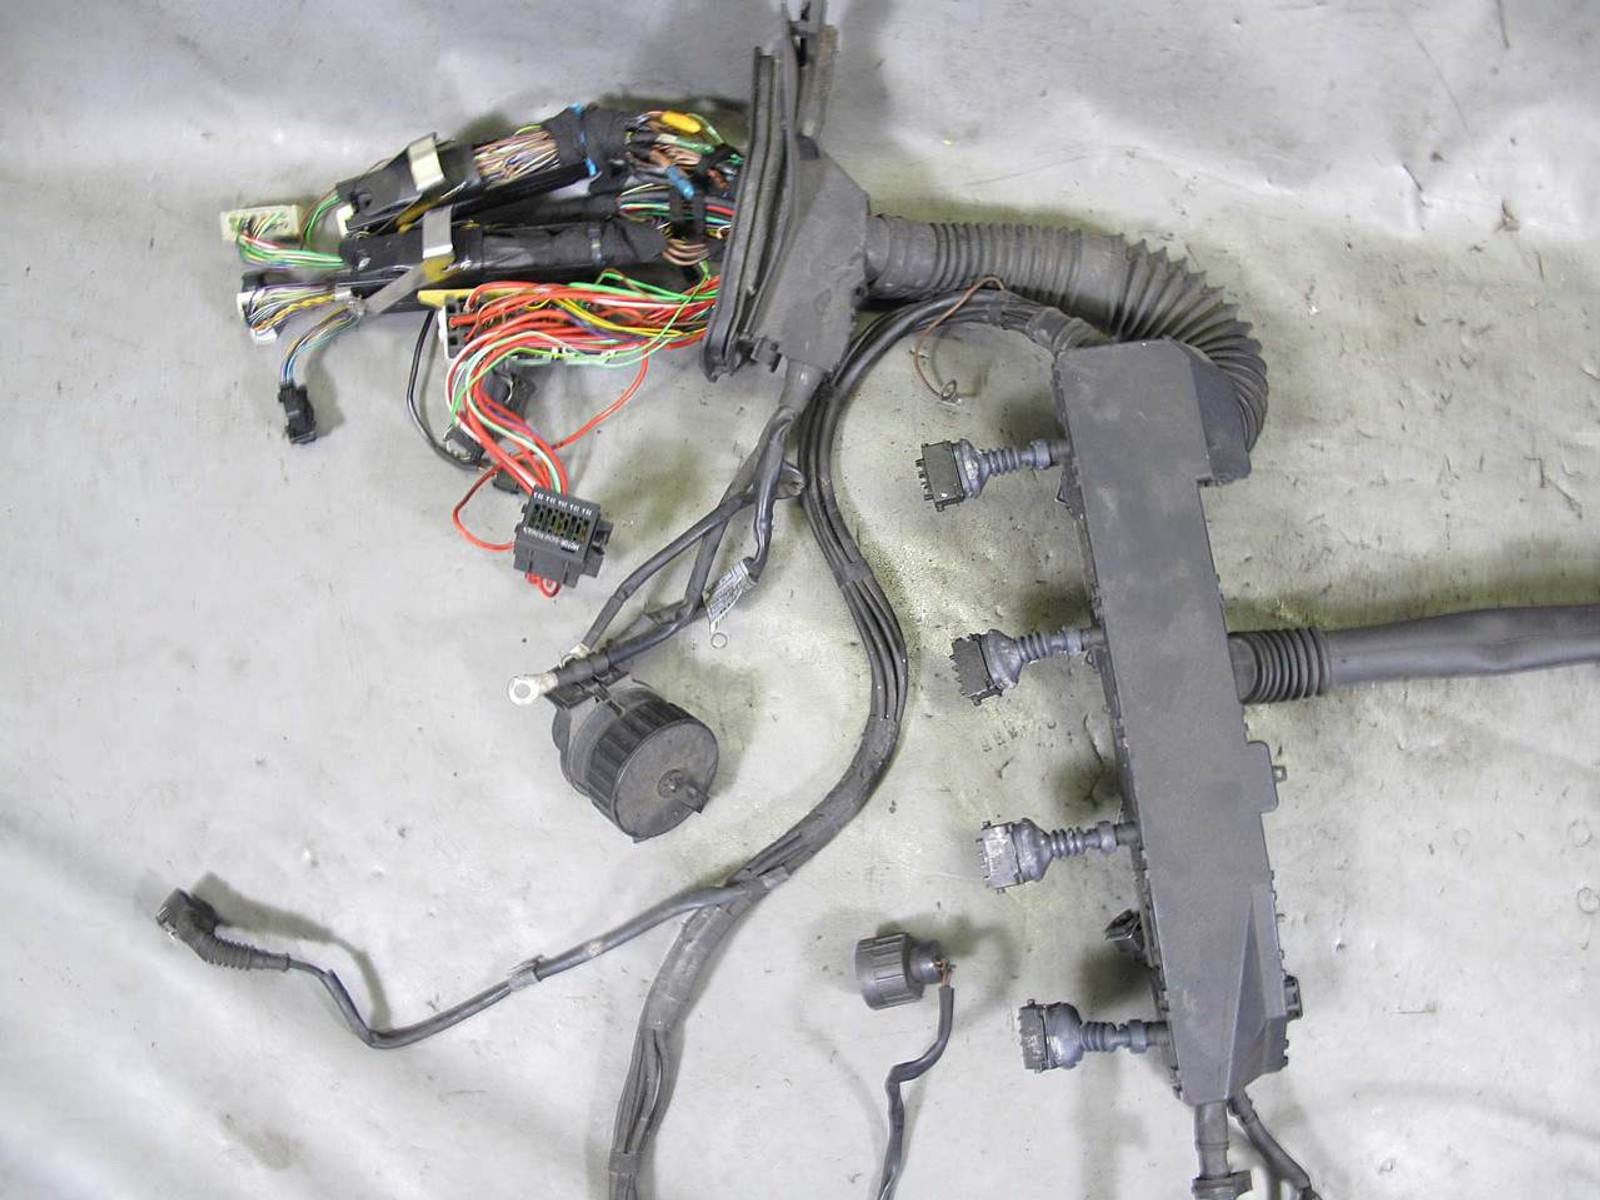 1996 1997 bmw e38 740i m62b44 v8 engine wiring harness complete used BMW 740iL Interior e38 740i m62b44 v8 engine wiring harness complete used oem img � 1996 1997